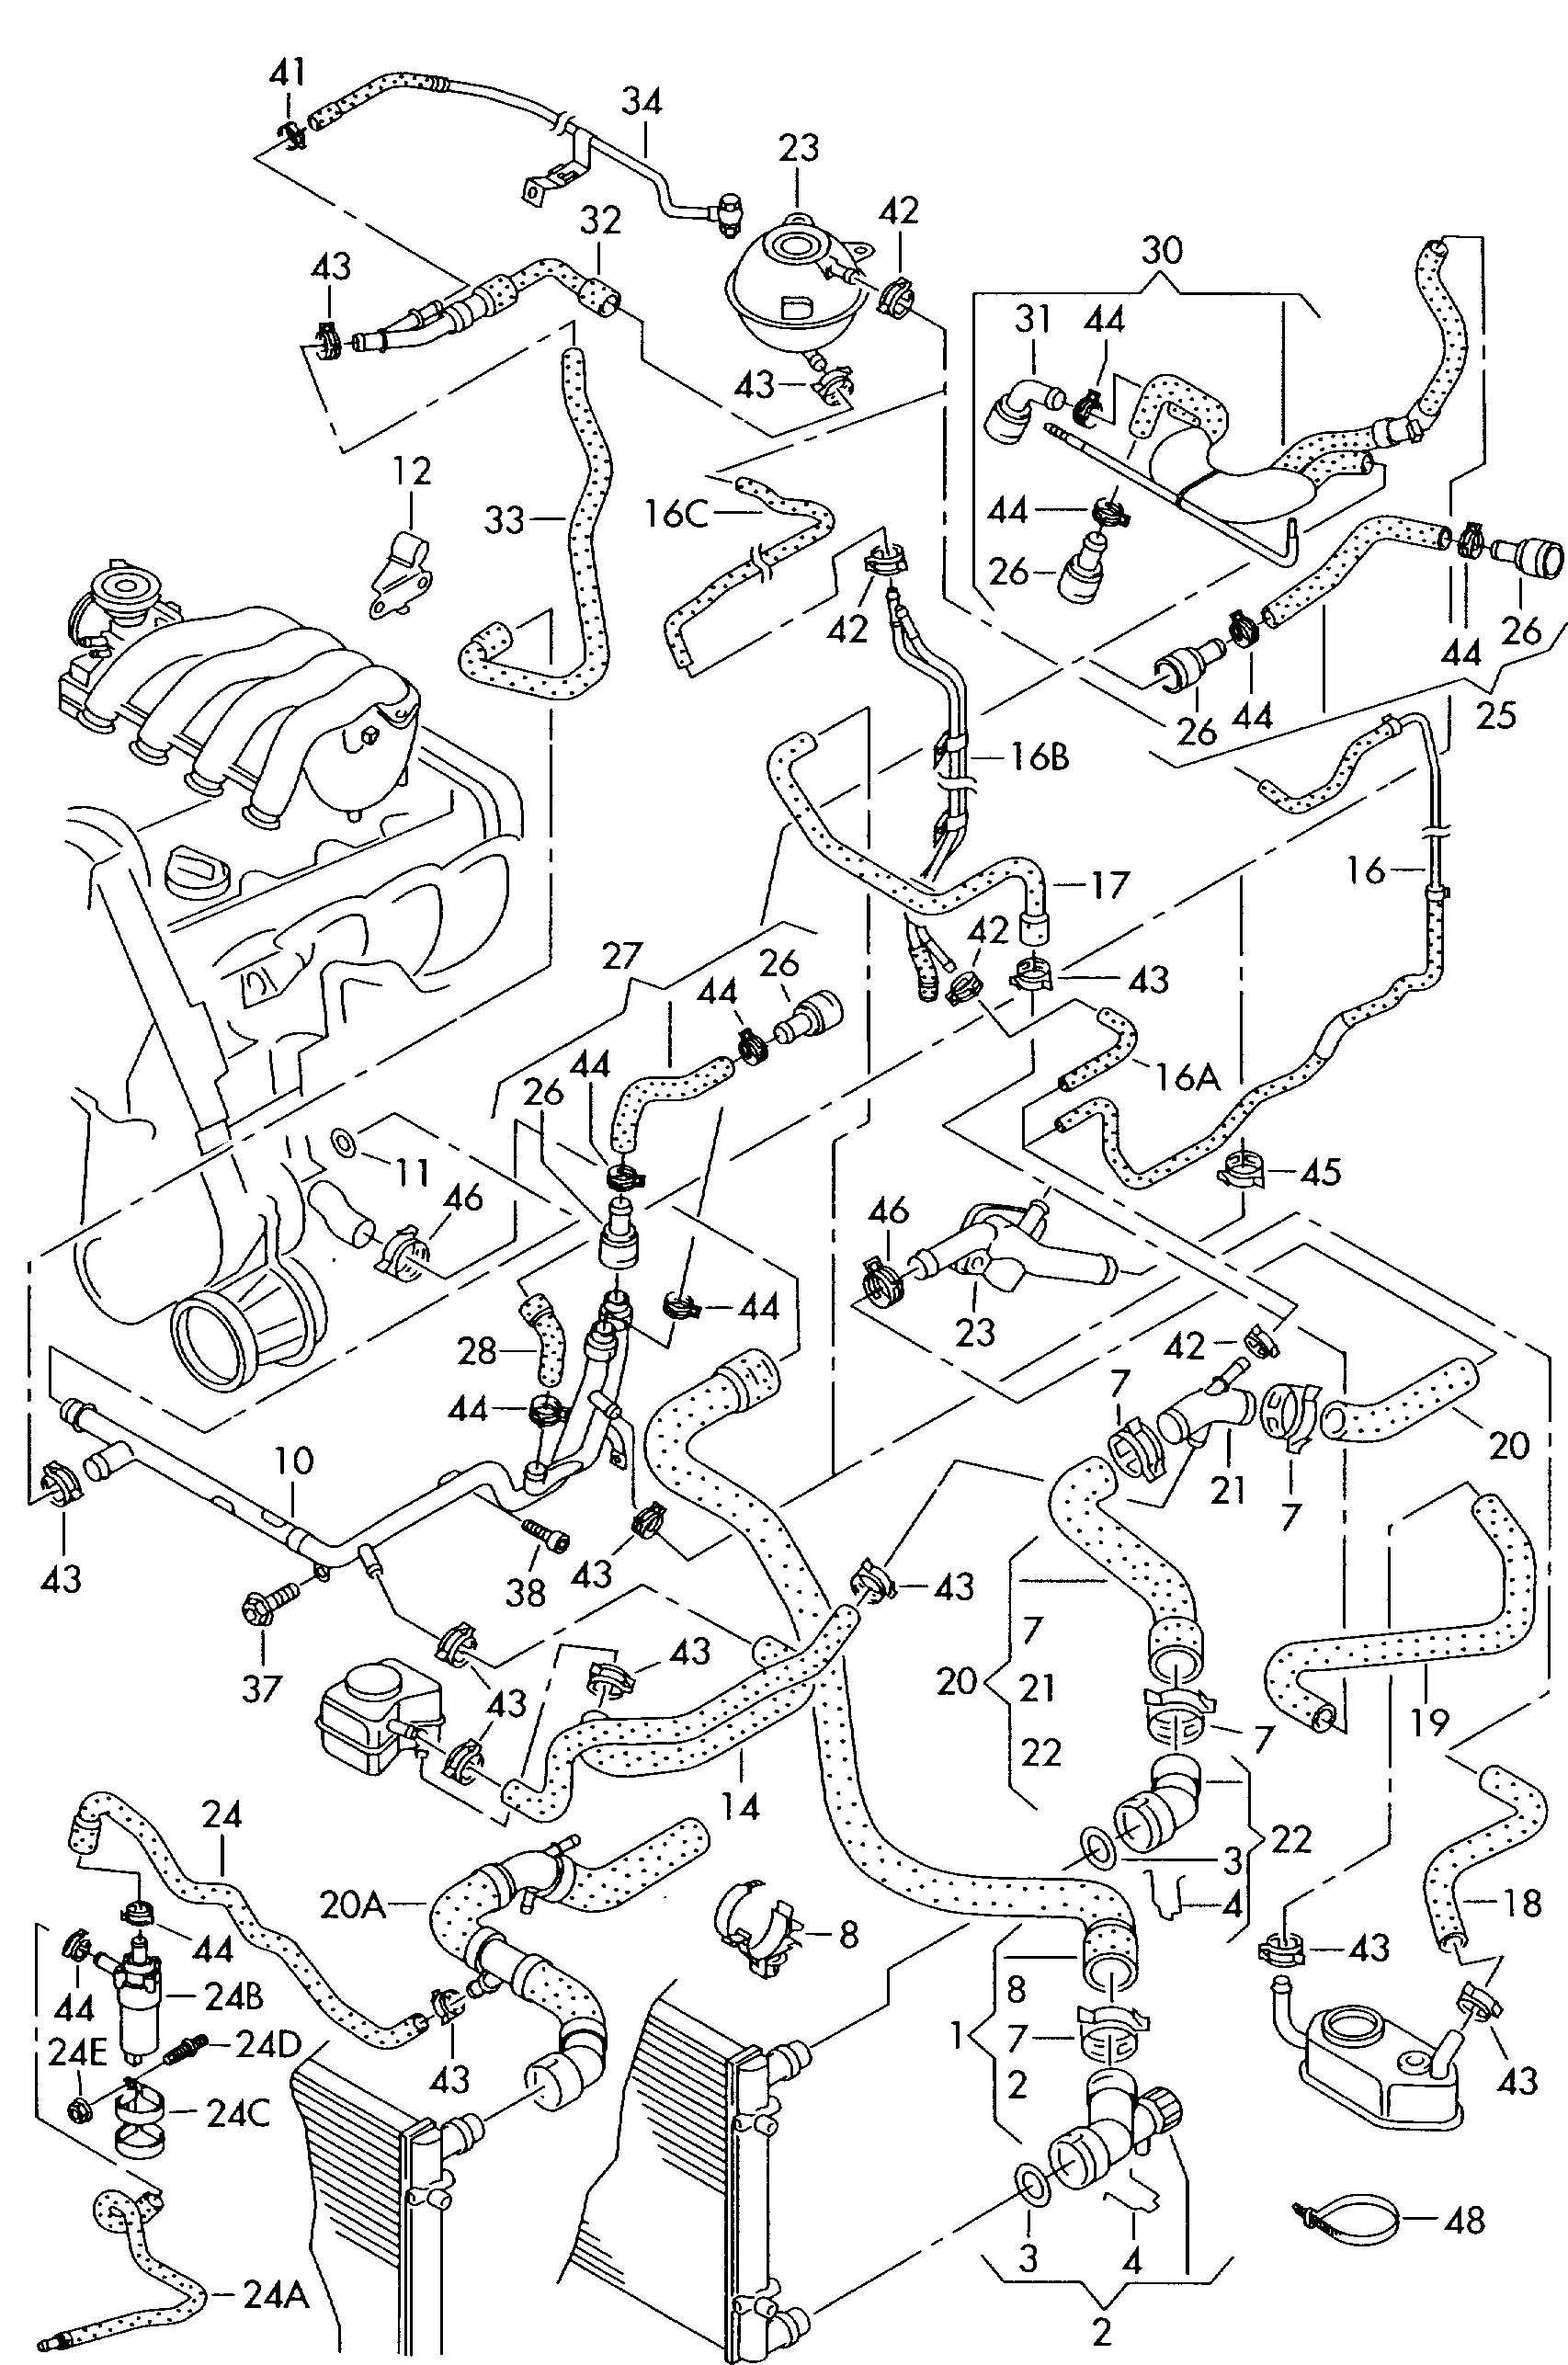 Jetta Parts Diagram Free Engine Image For User